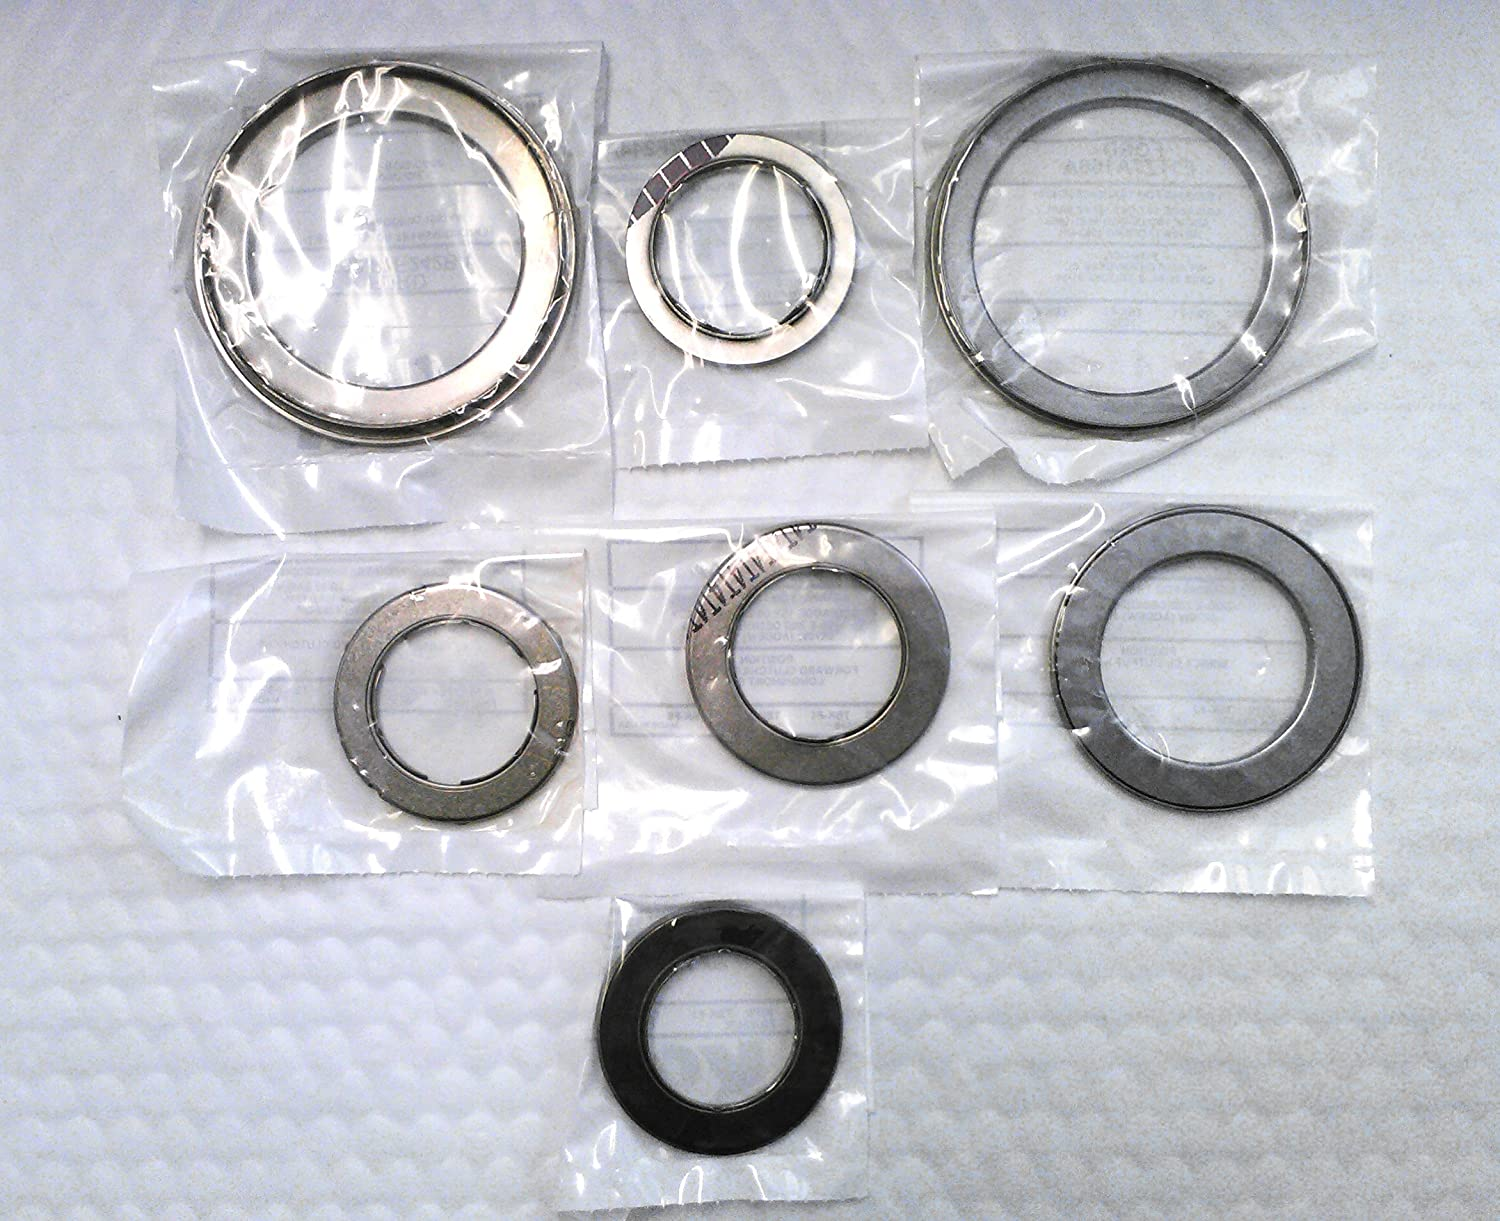 4R70W AODE Transmission Thrust Bearing Kit 1993 and Up Koyo